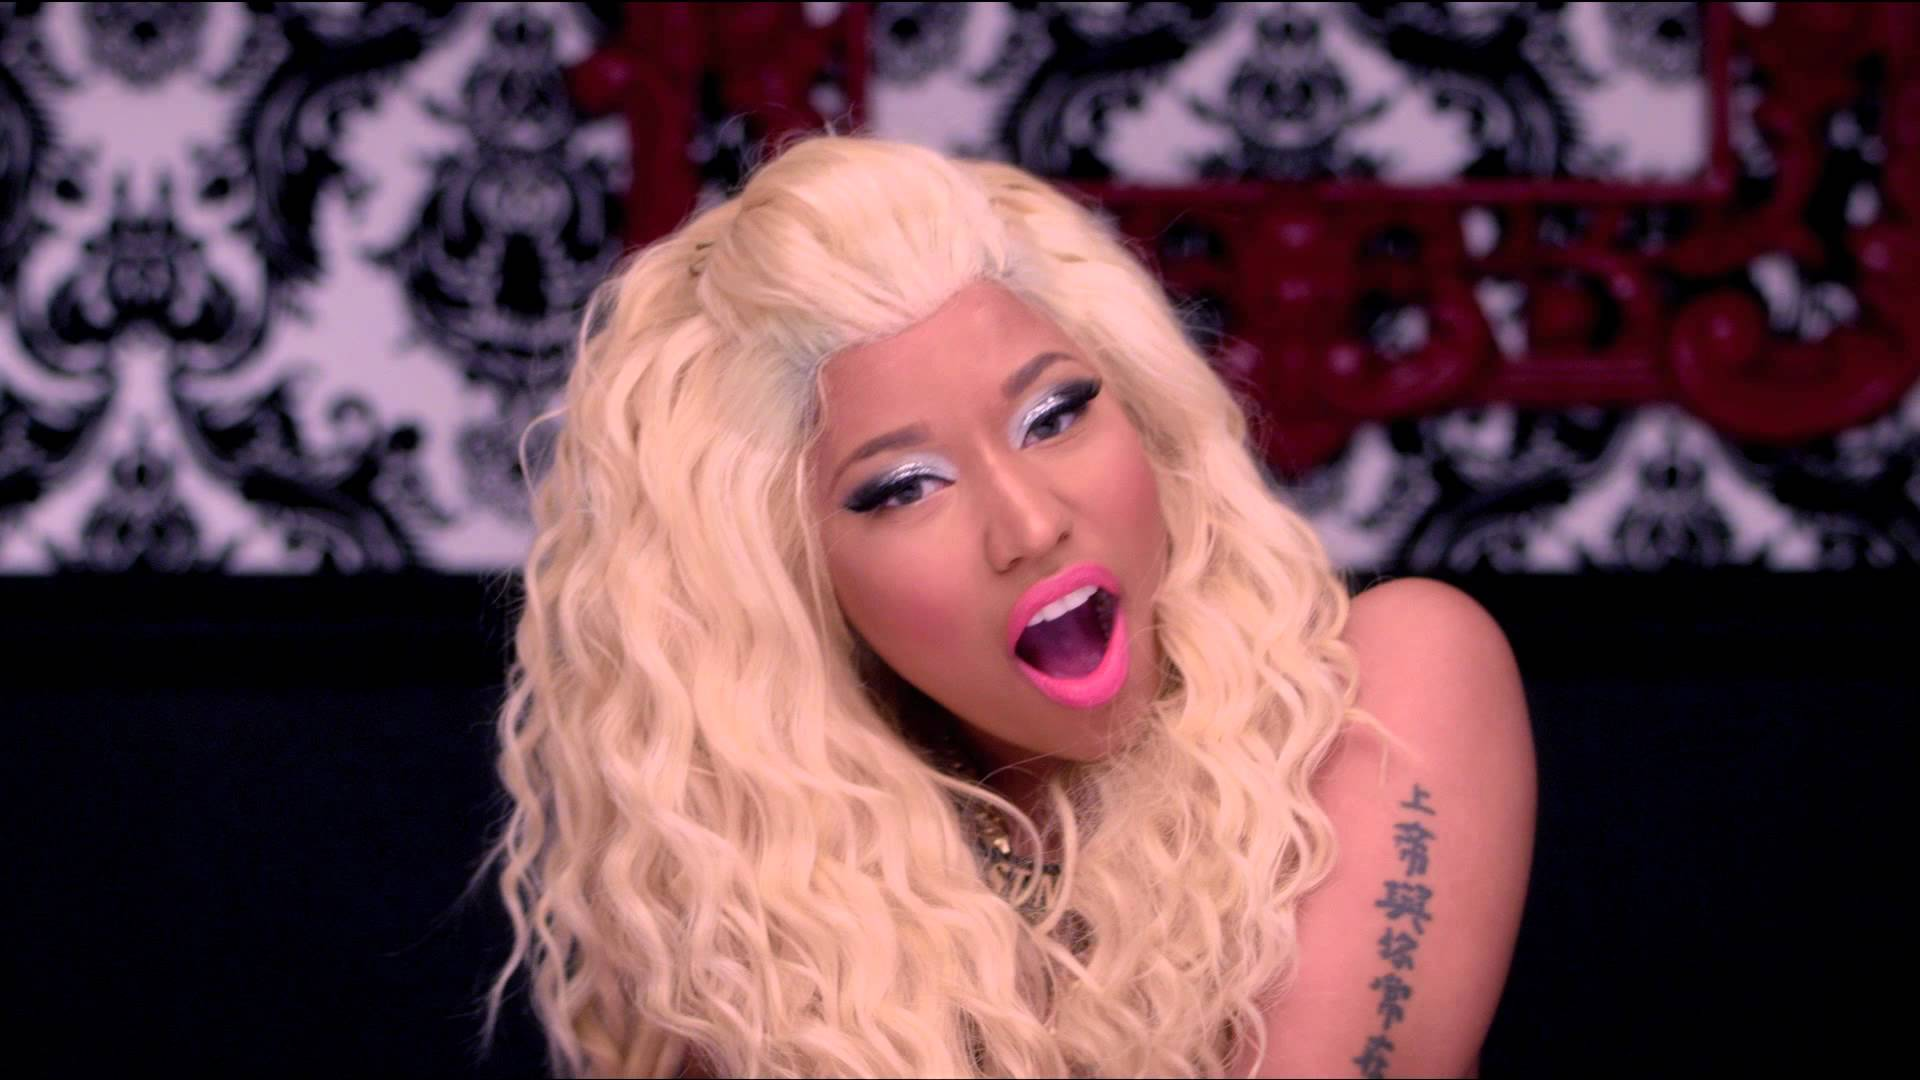 1920x1080 Nicki minaj tatoo hd wallpaper | 1920x1080 | Gludy